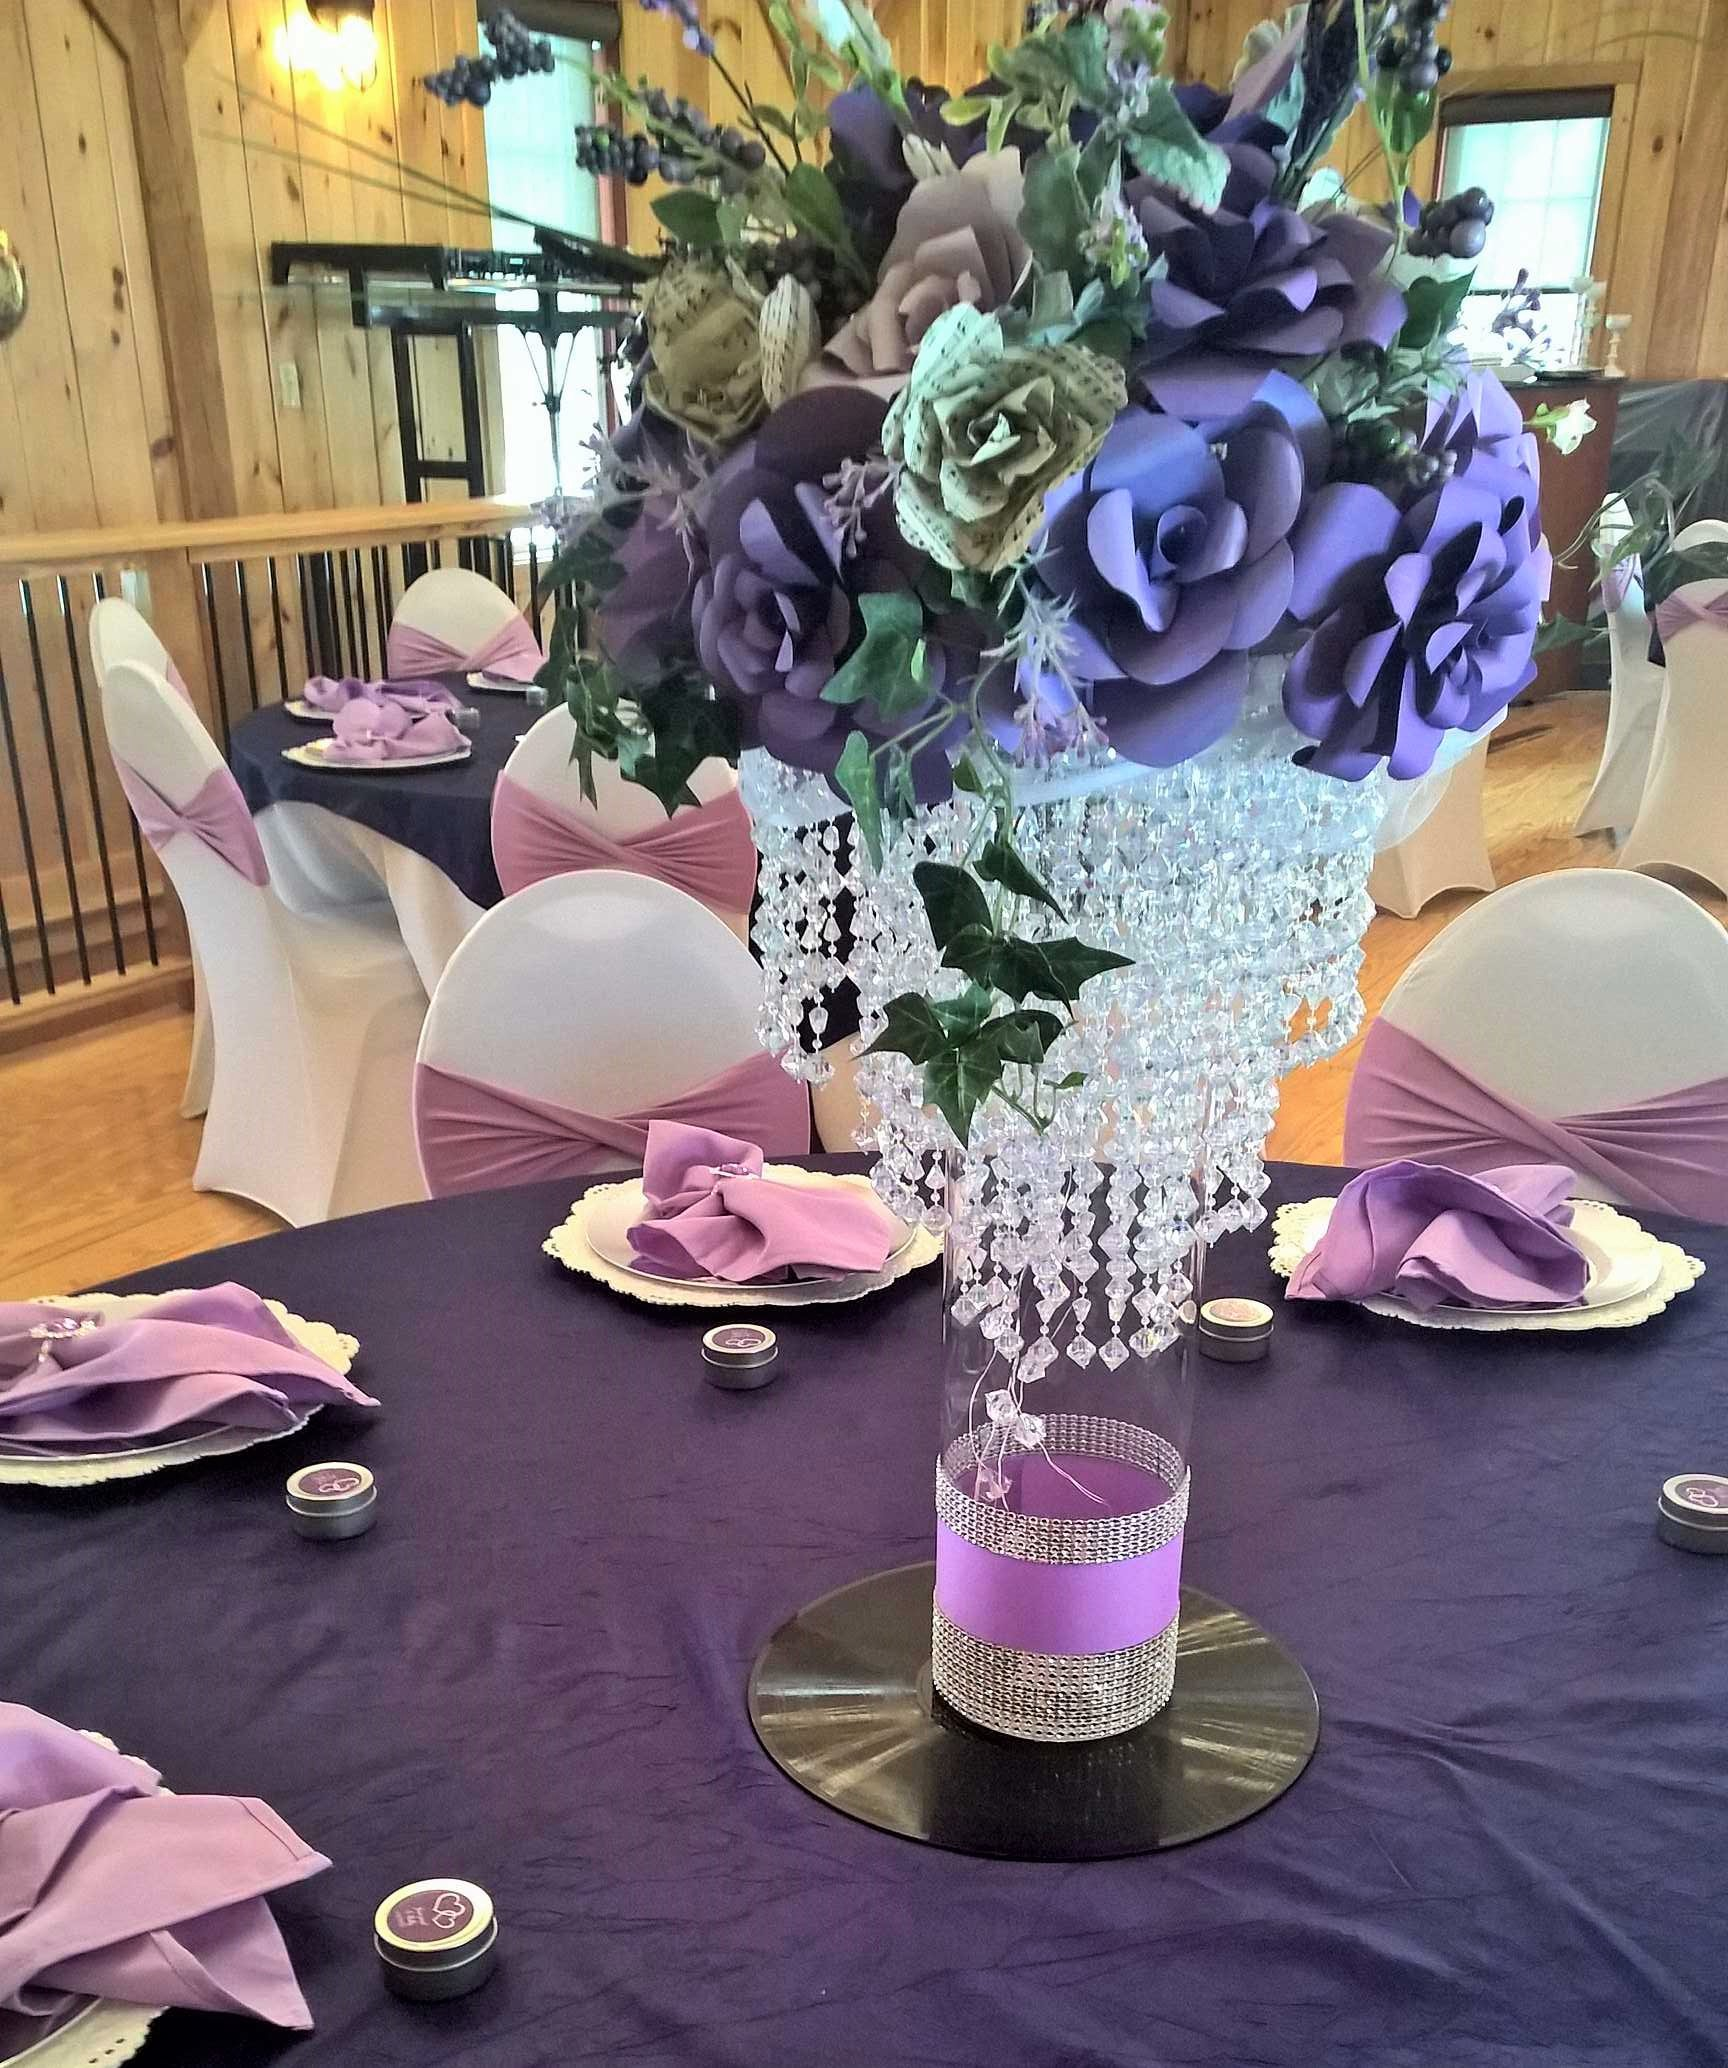 Purple and white table decorations as part of a wedding theme